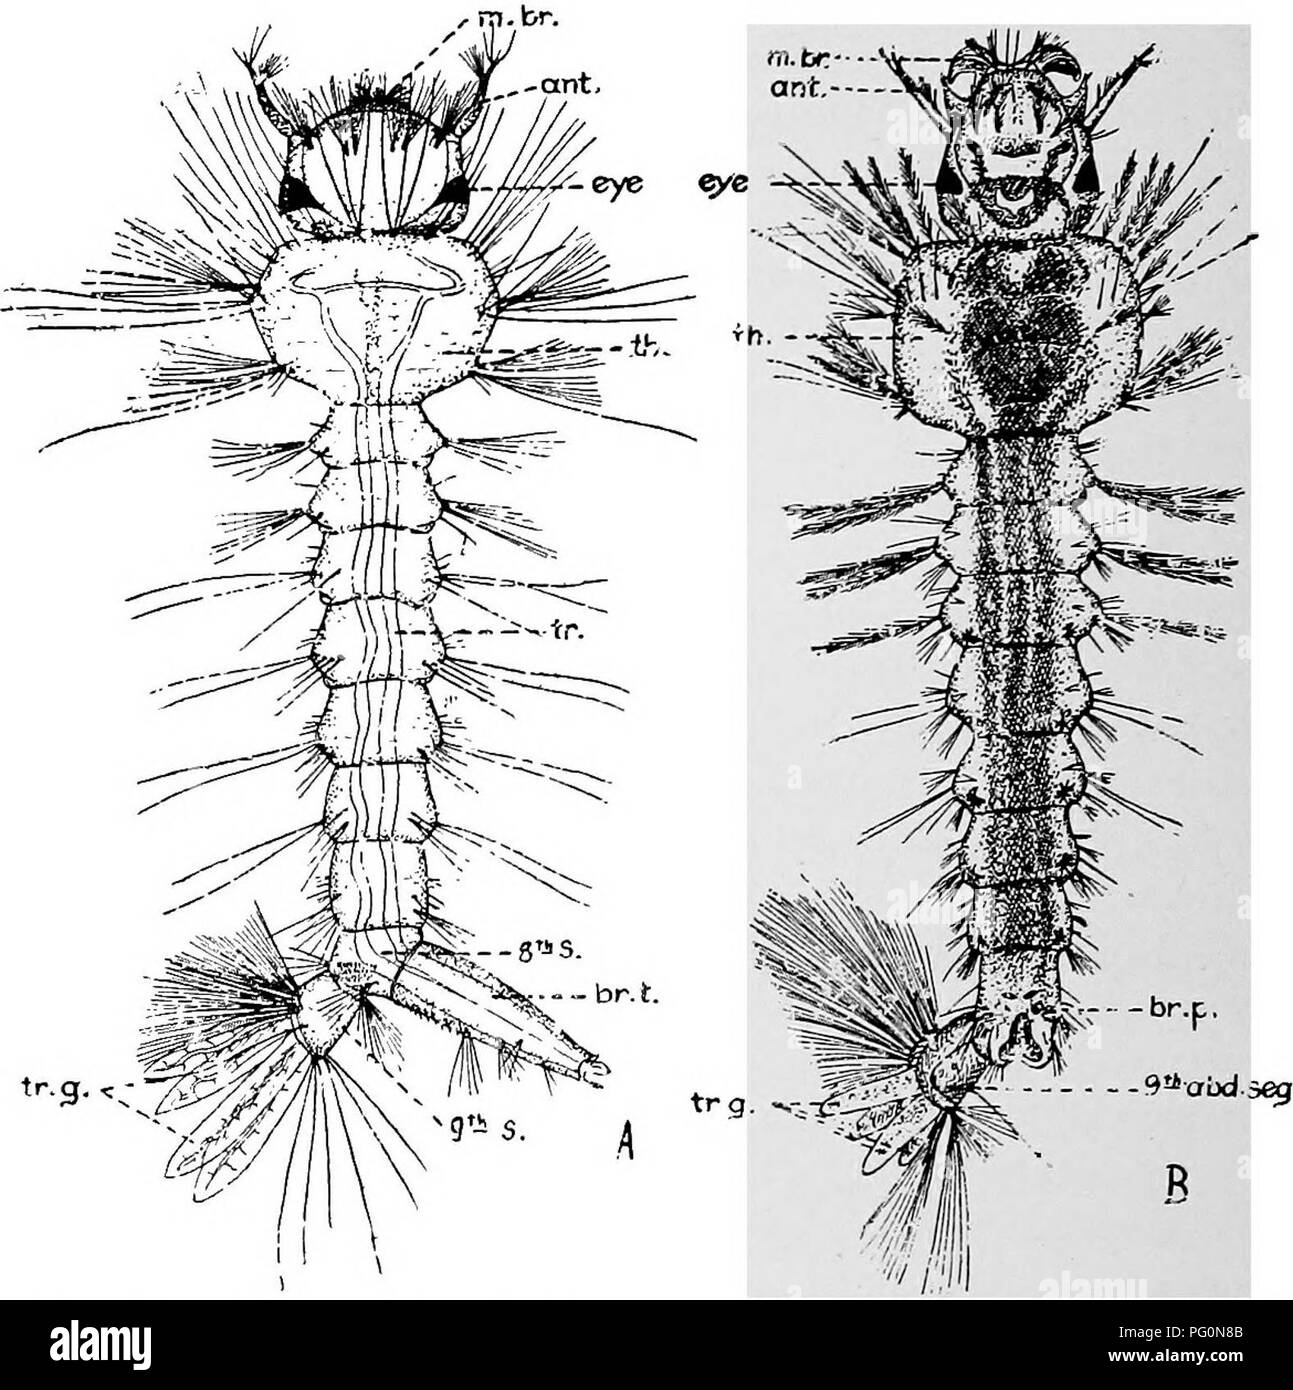 . Animal parasites and human disease. Medical parasitology; Insects as carriers of disease. 432 MOSQUITOES using their tracheal gills, but they die within a few hours if shut in water without dissolved air. Mosquito larvae, unless suspended from the surface film by means of the breathing tube, have a tendency to sink and they rise again only by an active jerking of the abdomen, using it as. Fig. 196. A, Larva of tropical house mosquito, Culex quinquefasciatus; ant., antennae; br. t., breathing tube or siphon; m. br., mouth brushes; th., thorax; 8th s., 8th abdominal segment; 9th s., 9th abdomi - Stock Image